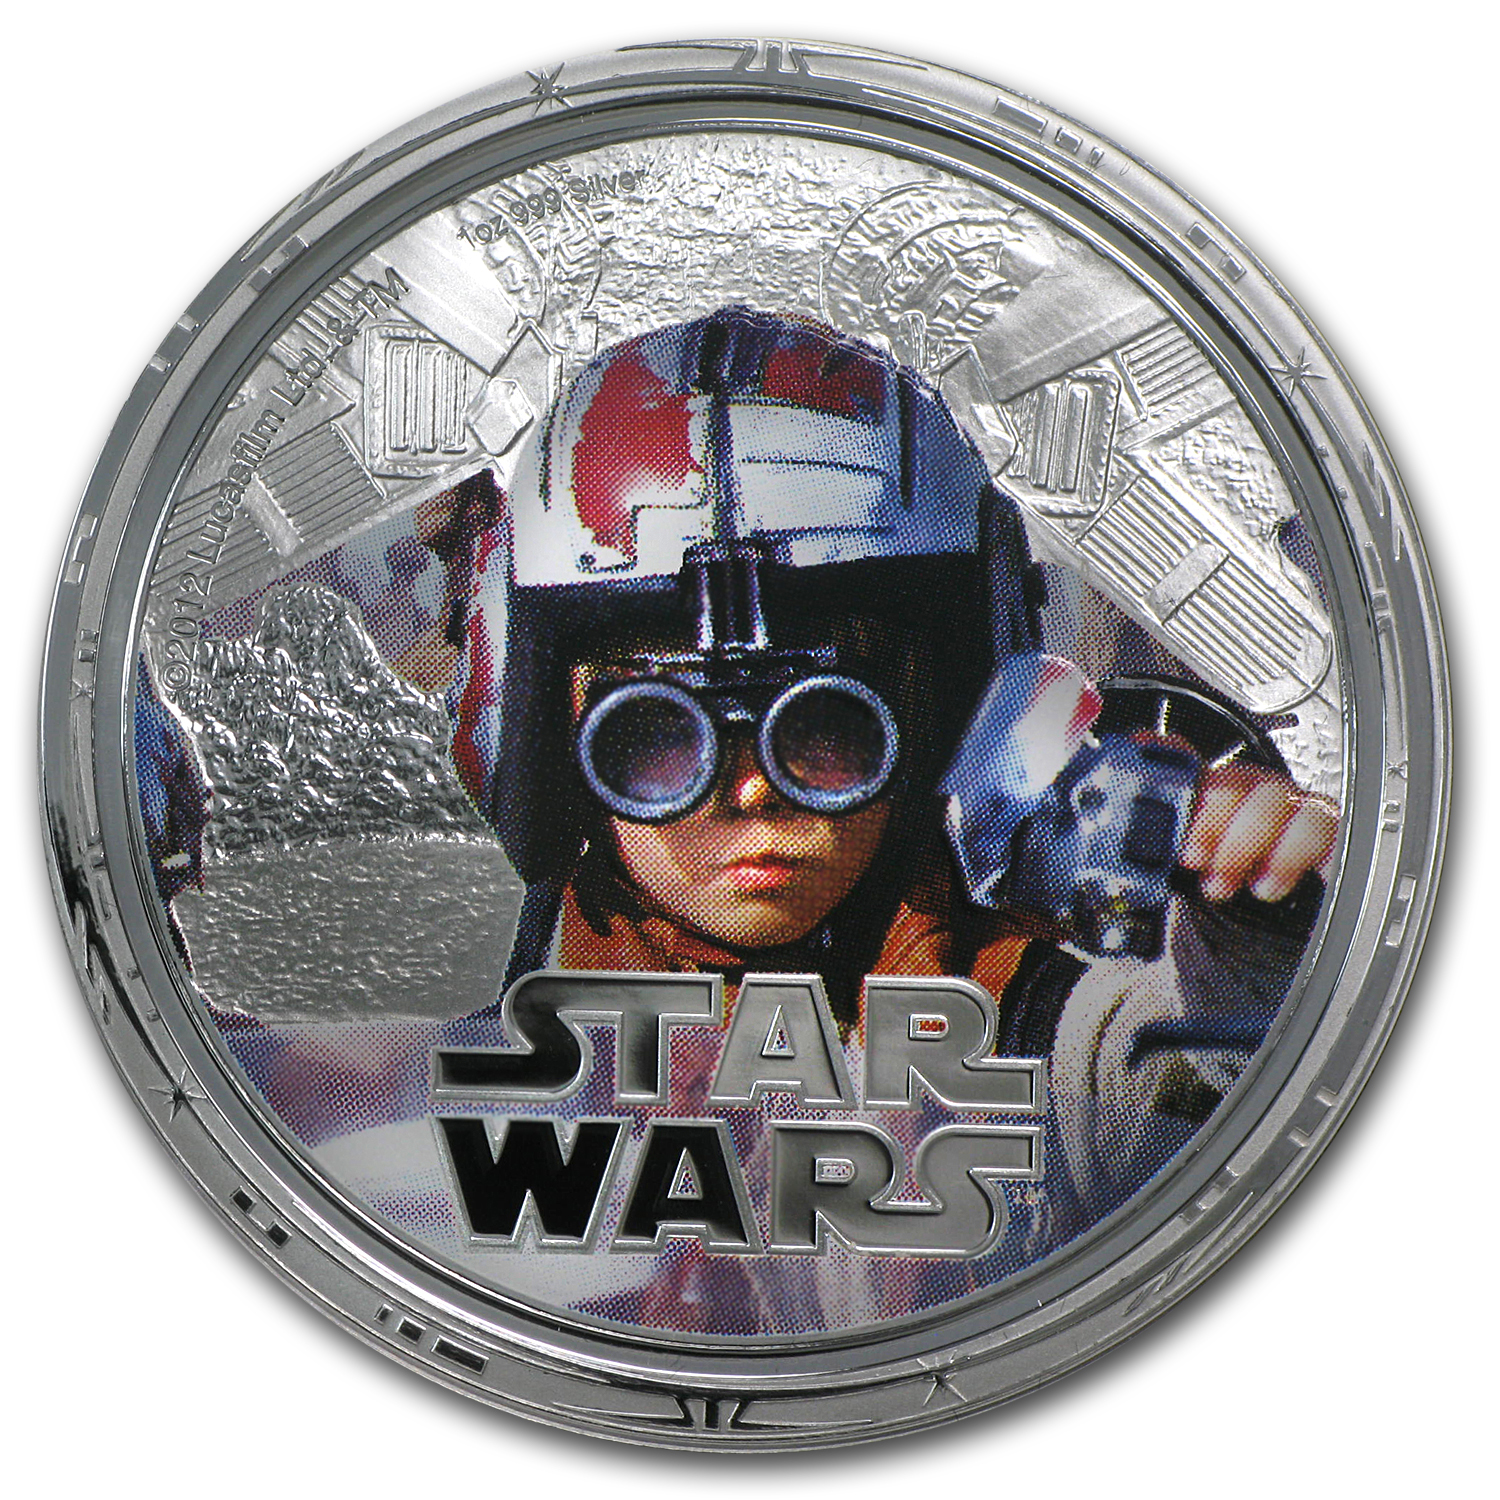 2012 4-Coin Silver Star Wars Millennium Falcon Prf Set (Series 2)